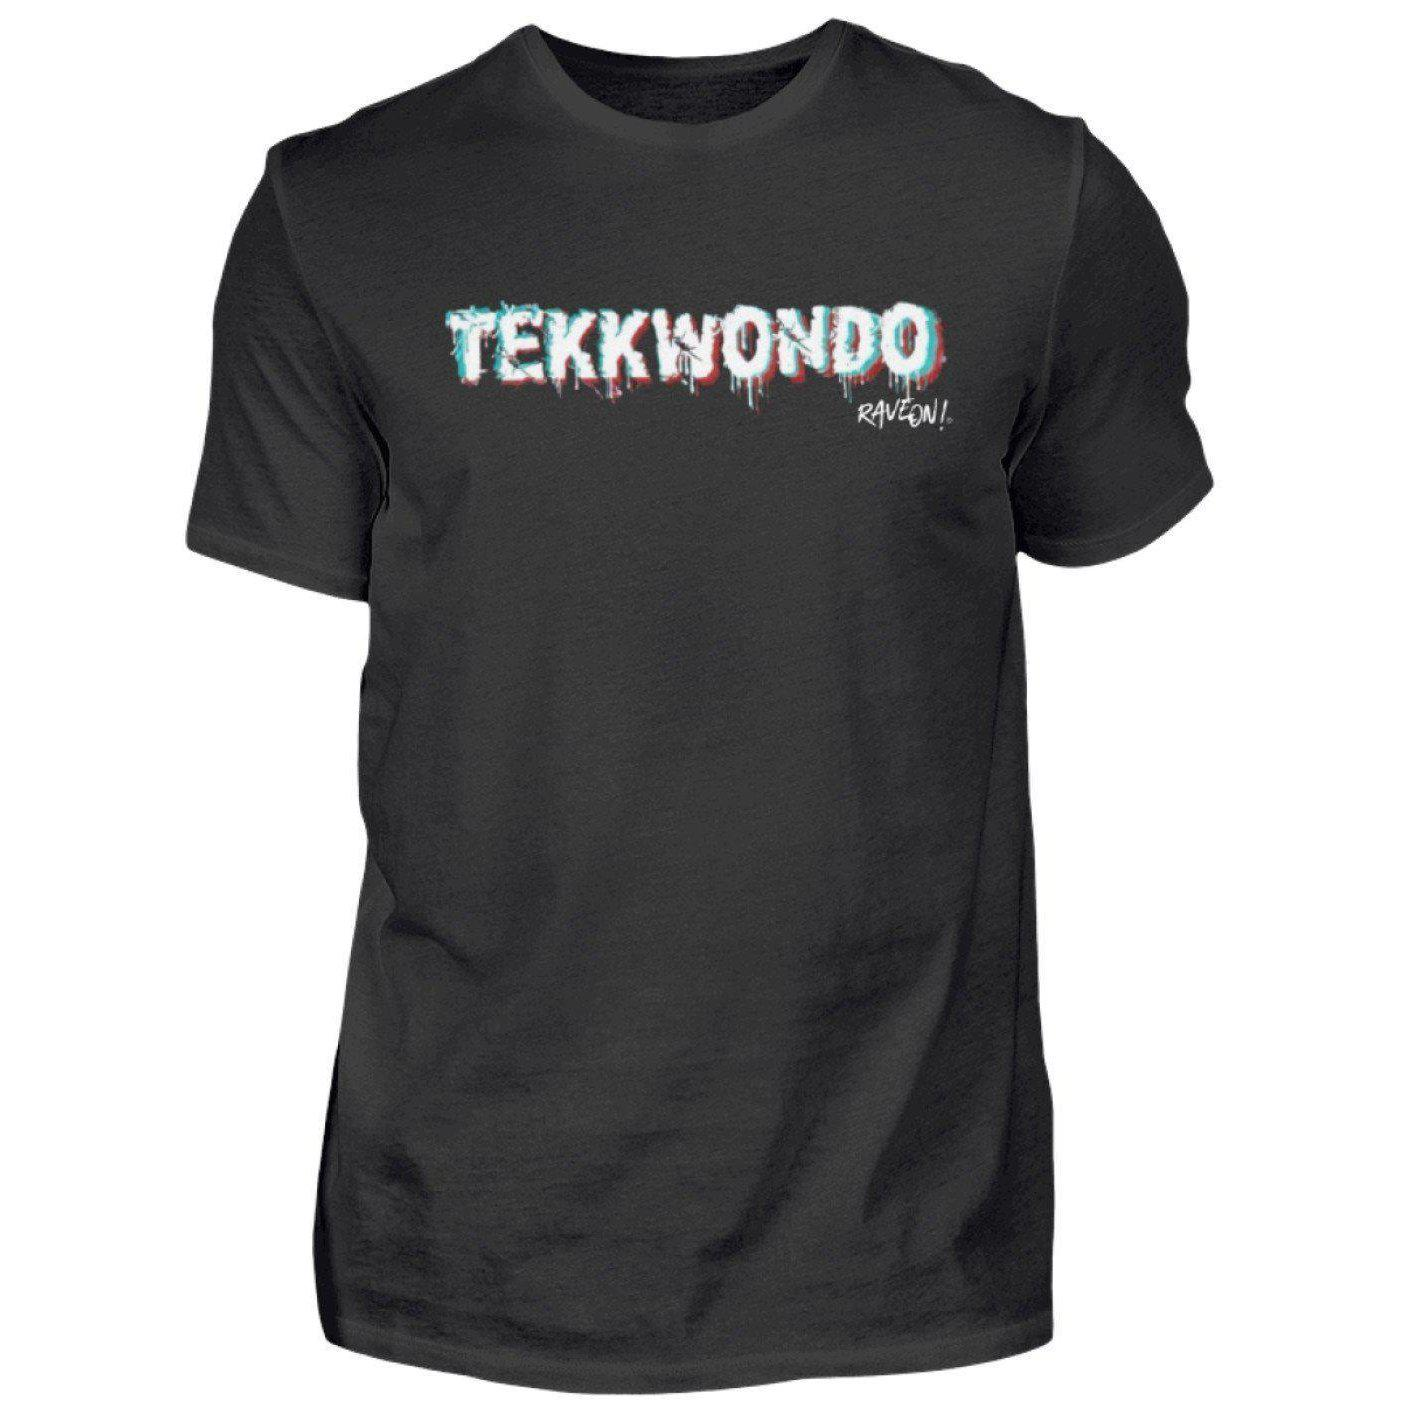 TEKKWONDO by Rave On!® - Men's Shirt Men's Basic T-Shirt Black / S - Rave On!® the club & techno scene shop for cool young fashion streetwear style & fashion outfits + sexy festival 420 stuff